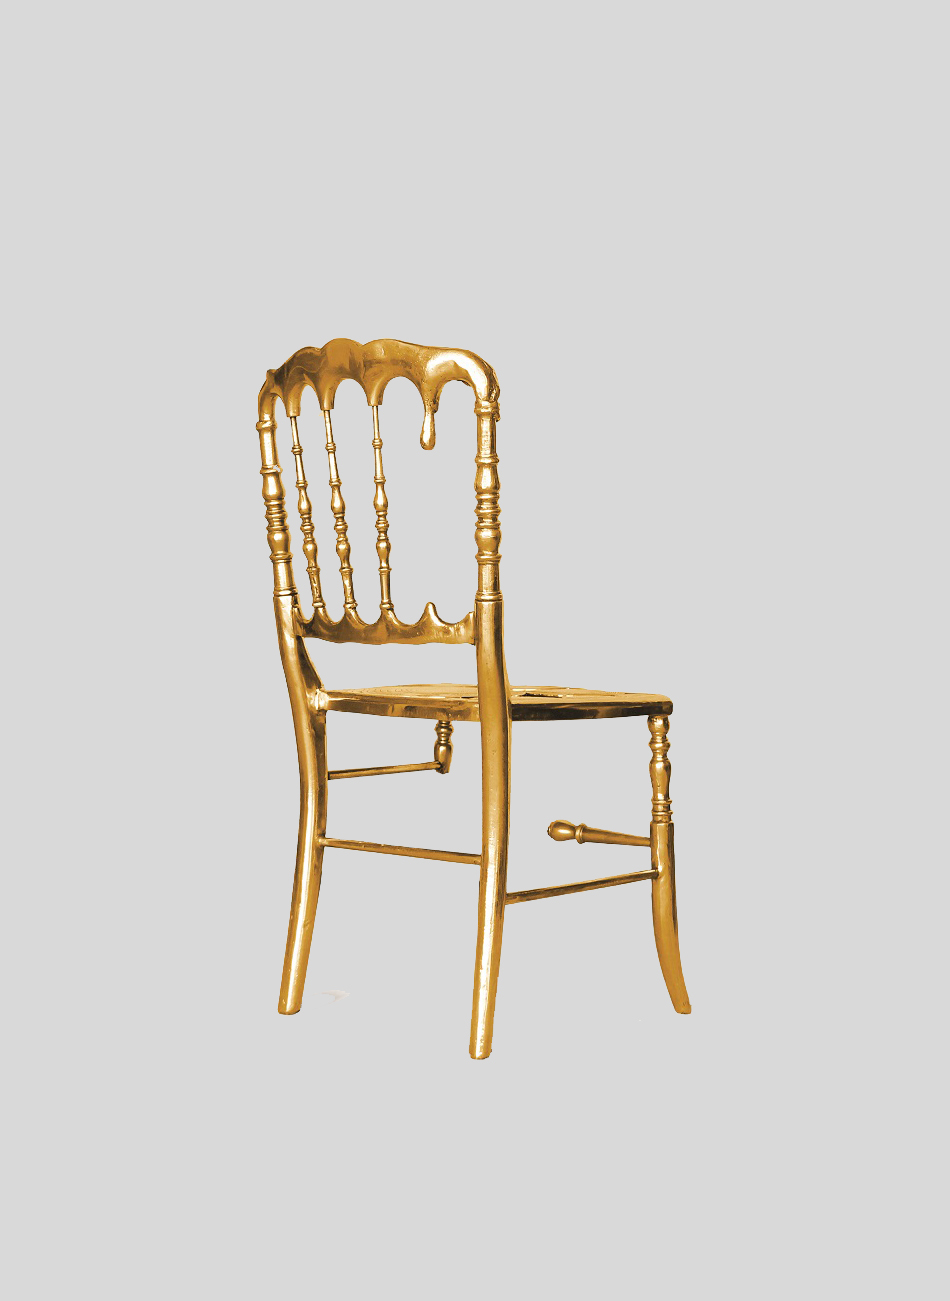 Chair Designs That Look Like Authentic Pieces of Art chair designs Chair Designs That Look Like Authentic Pieces of Art 10 Chair Designs That Look Like Authentic Pieces of Art 6